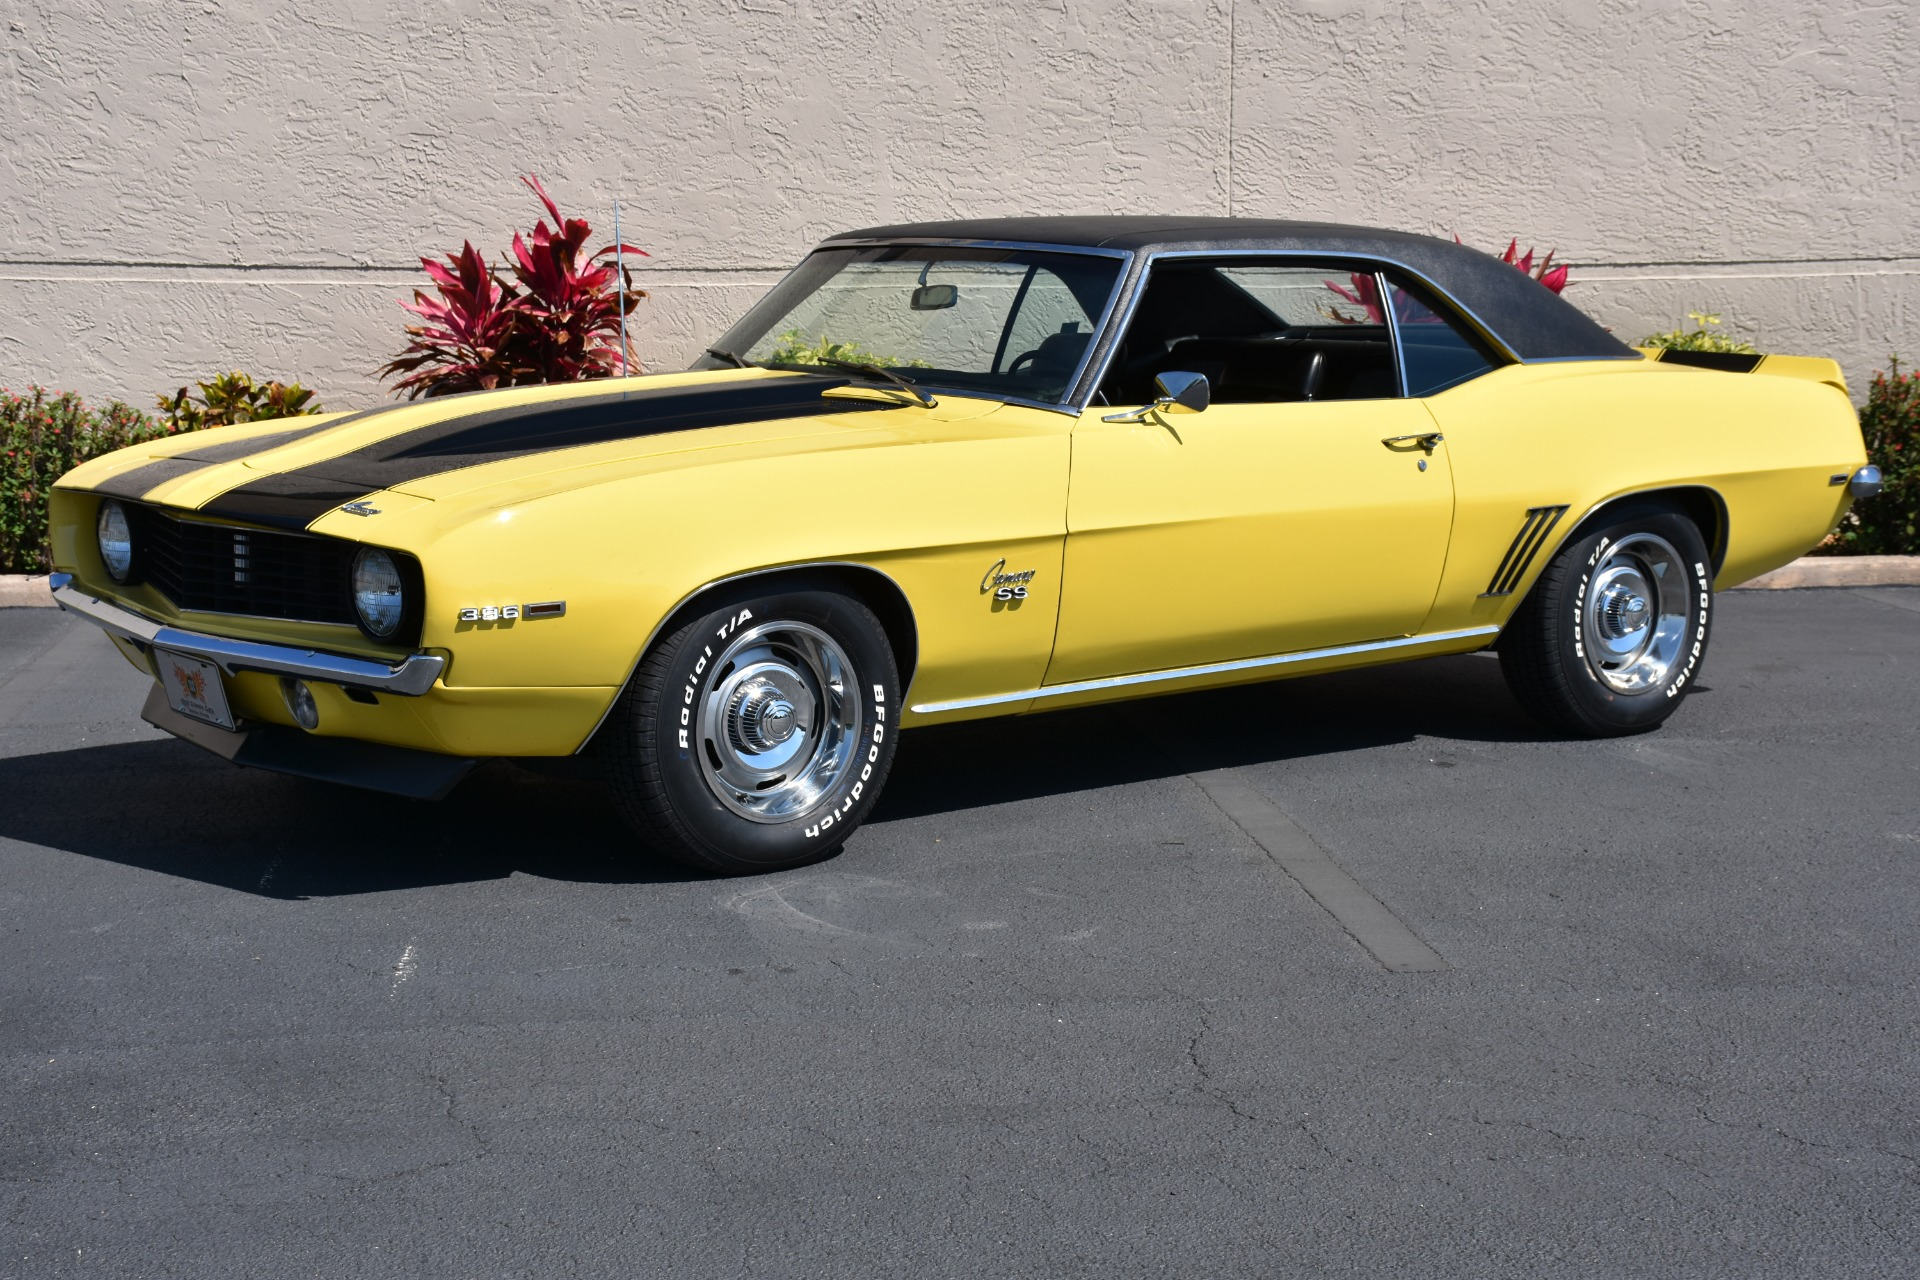 1969 Daytona Yellow Chevy Camaro For Sale